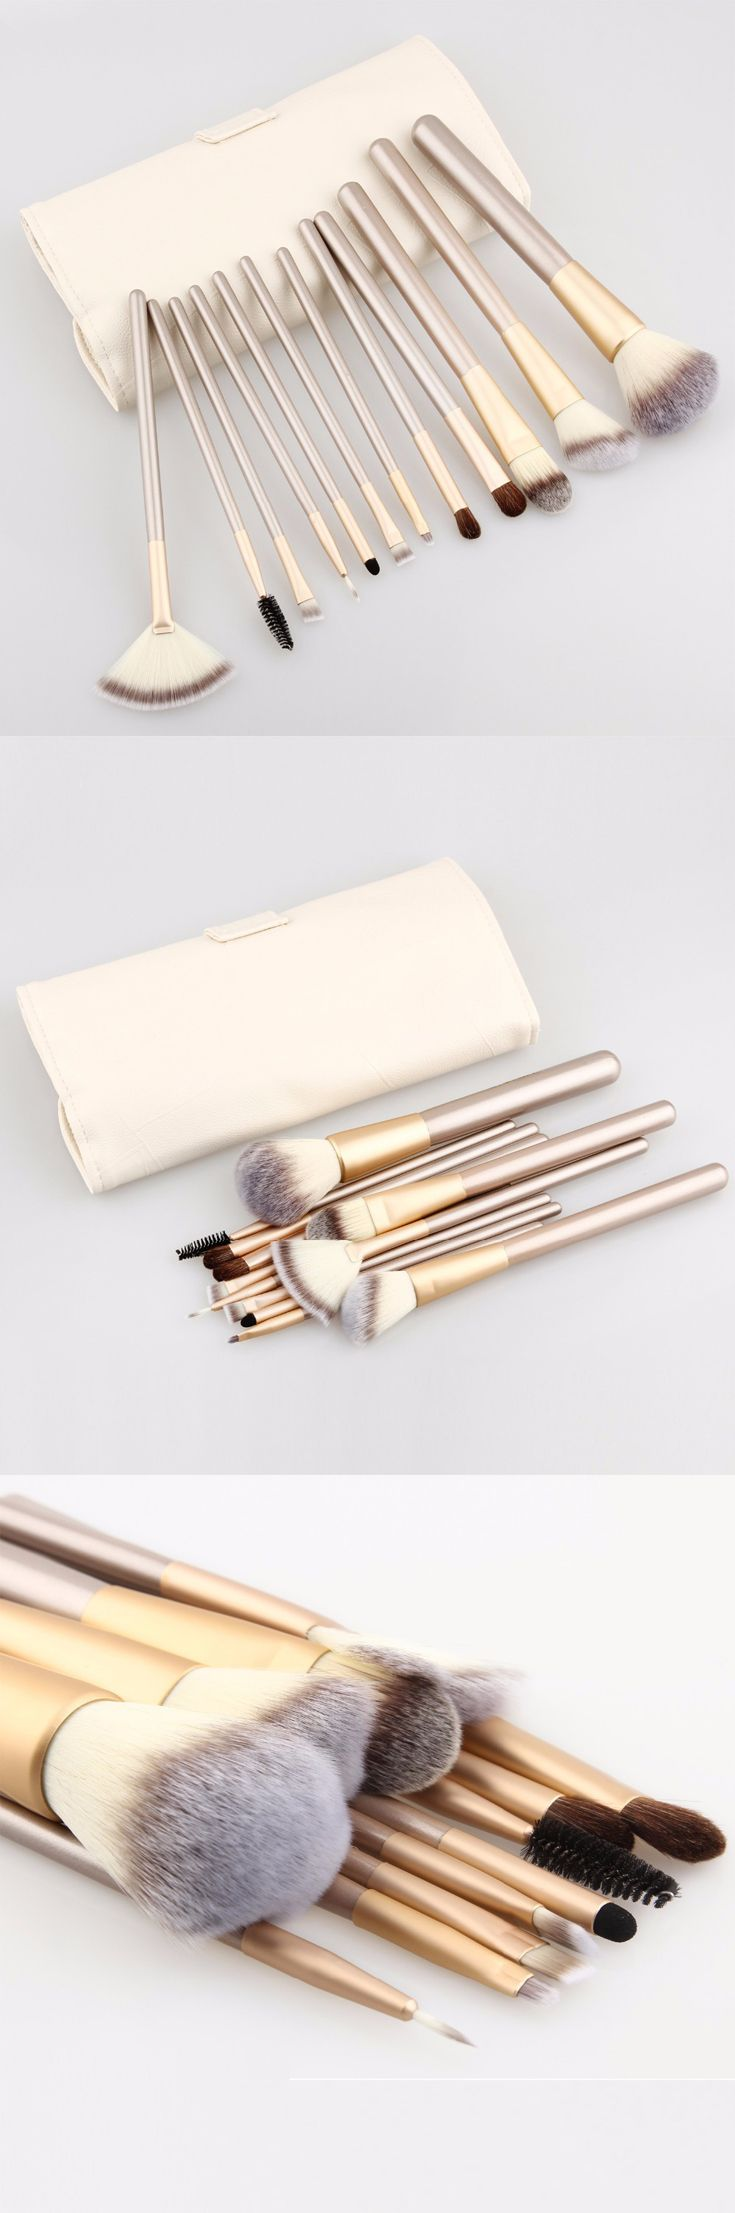 Hotrose Makeup Brushing Brush Set 12/18 pcs Soft Synthetic Professional Cosmetic Makeup Foundation Powder Blush Eyeliner Brushes